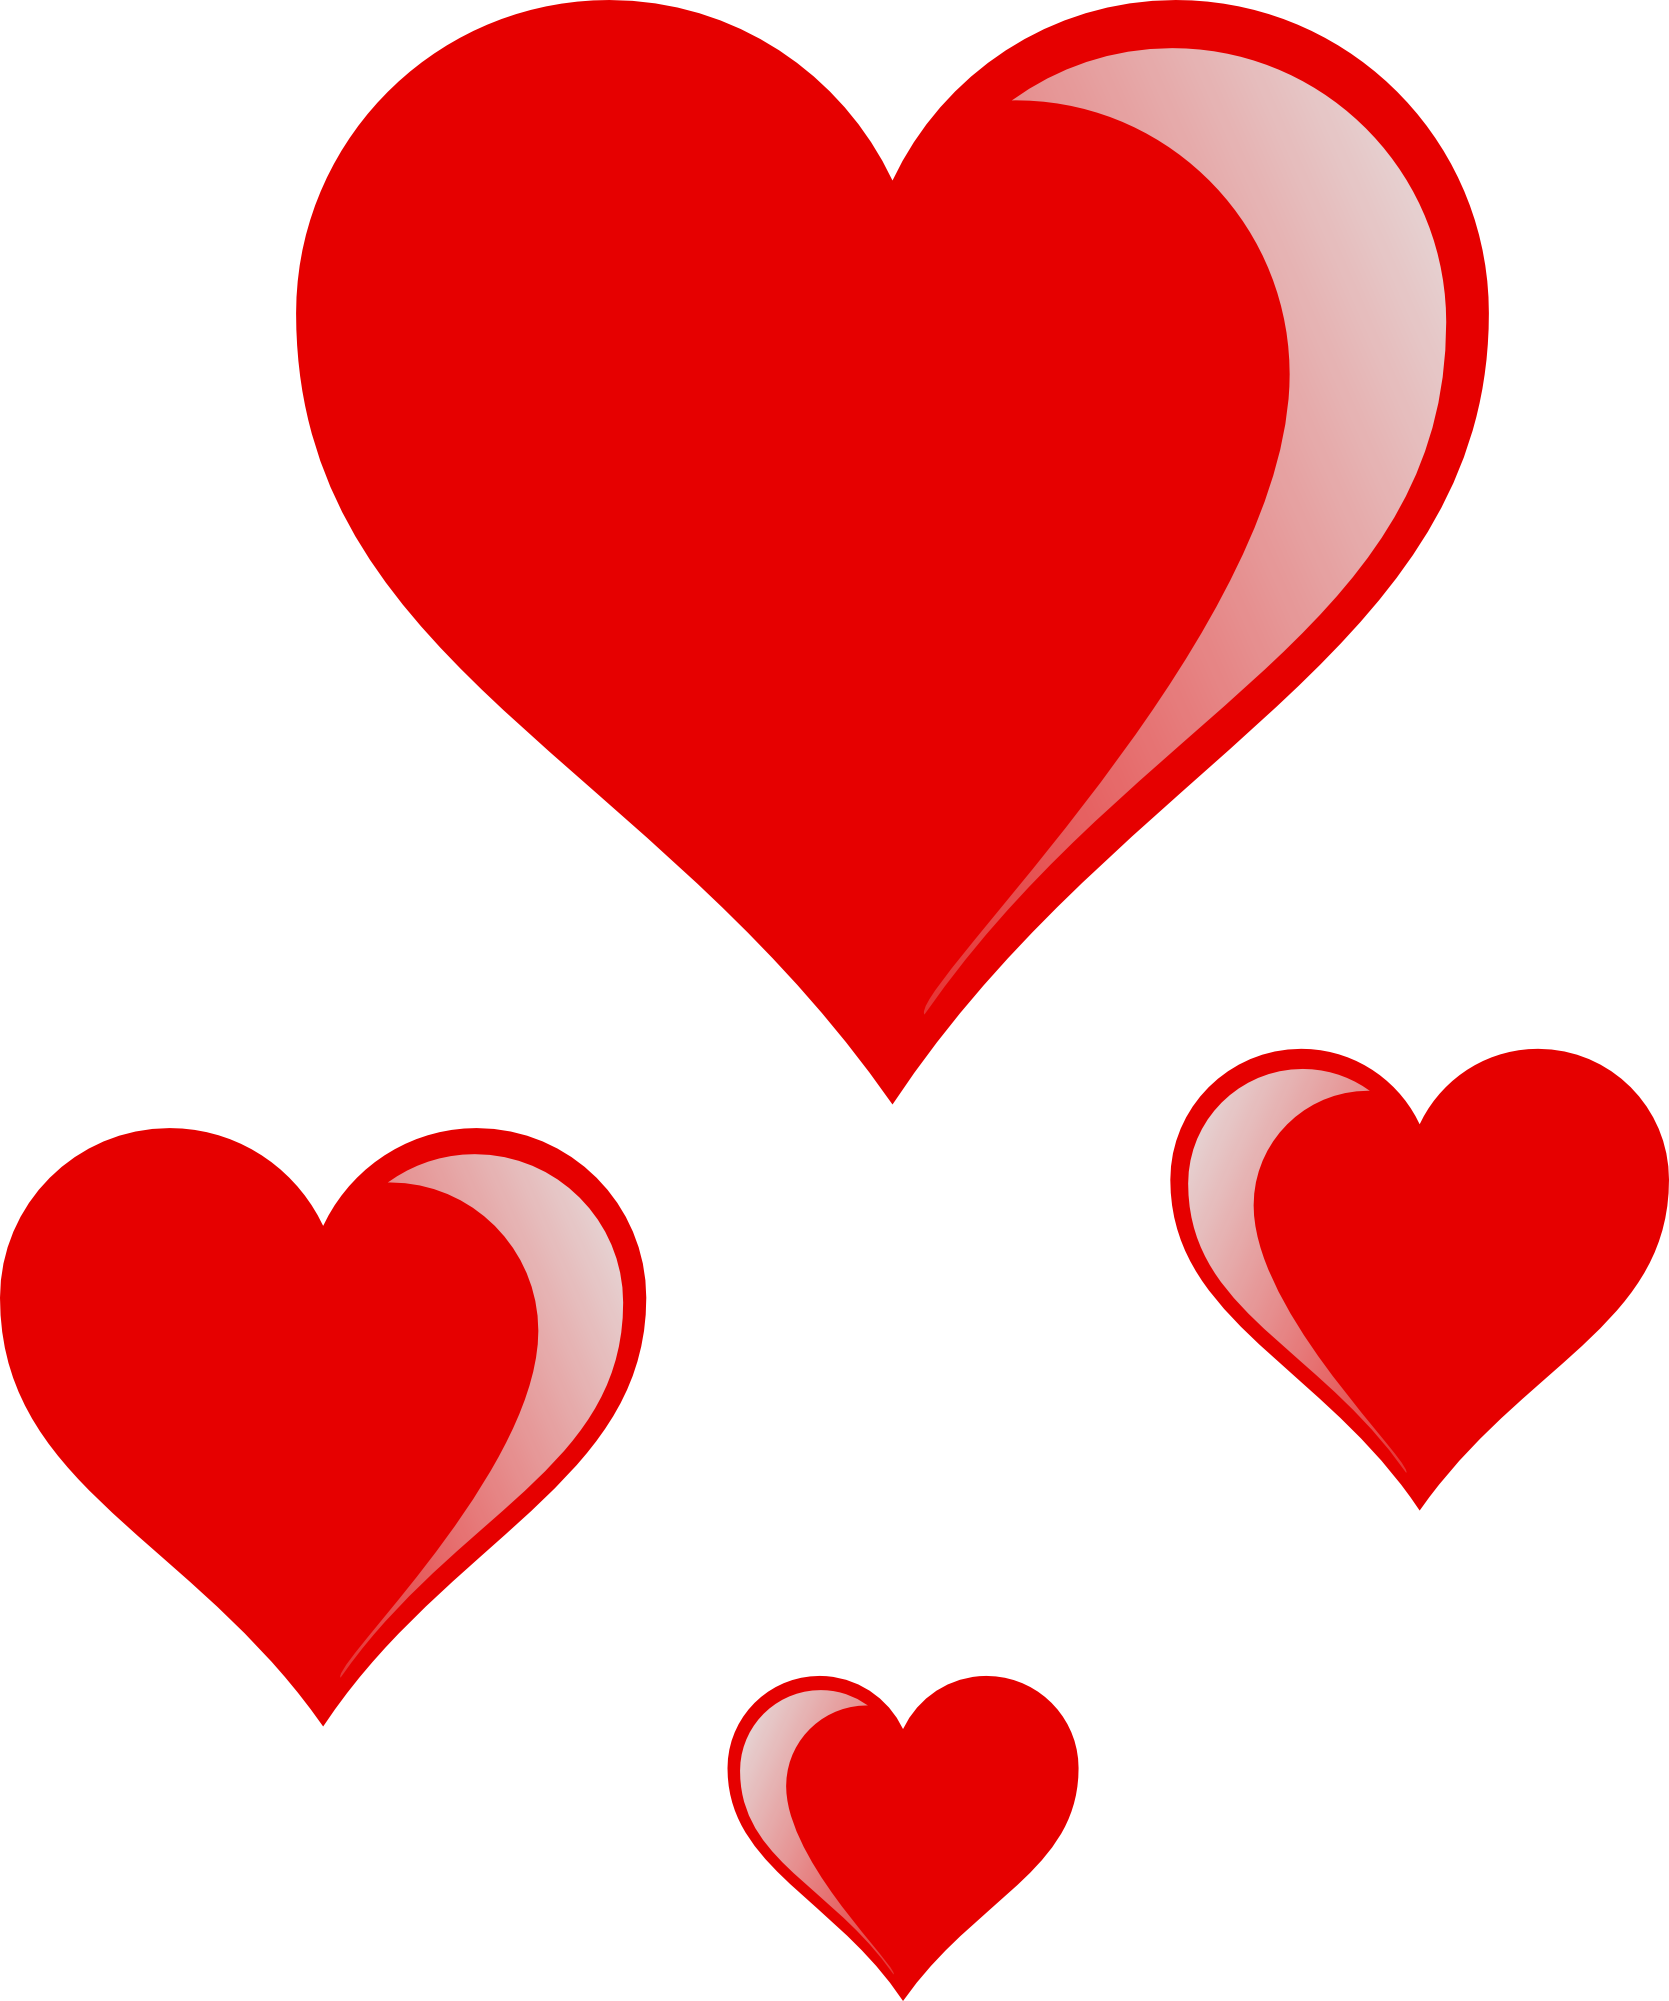 Valentines Hearts - ClipArt Best